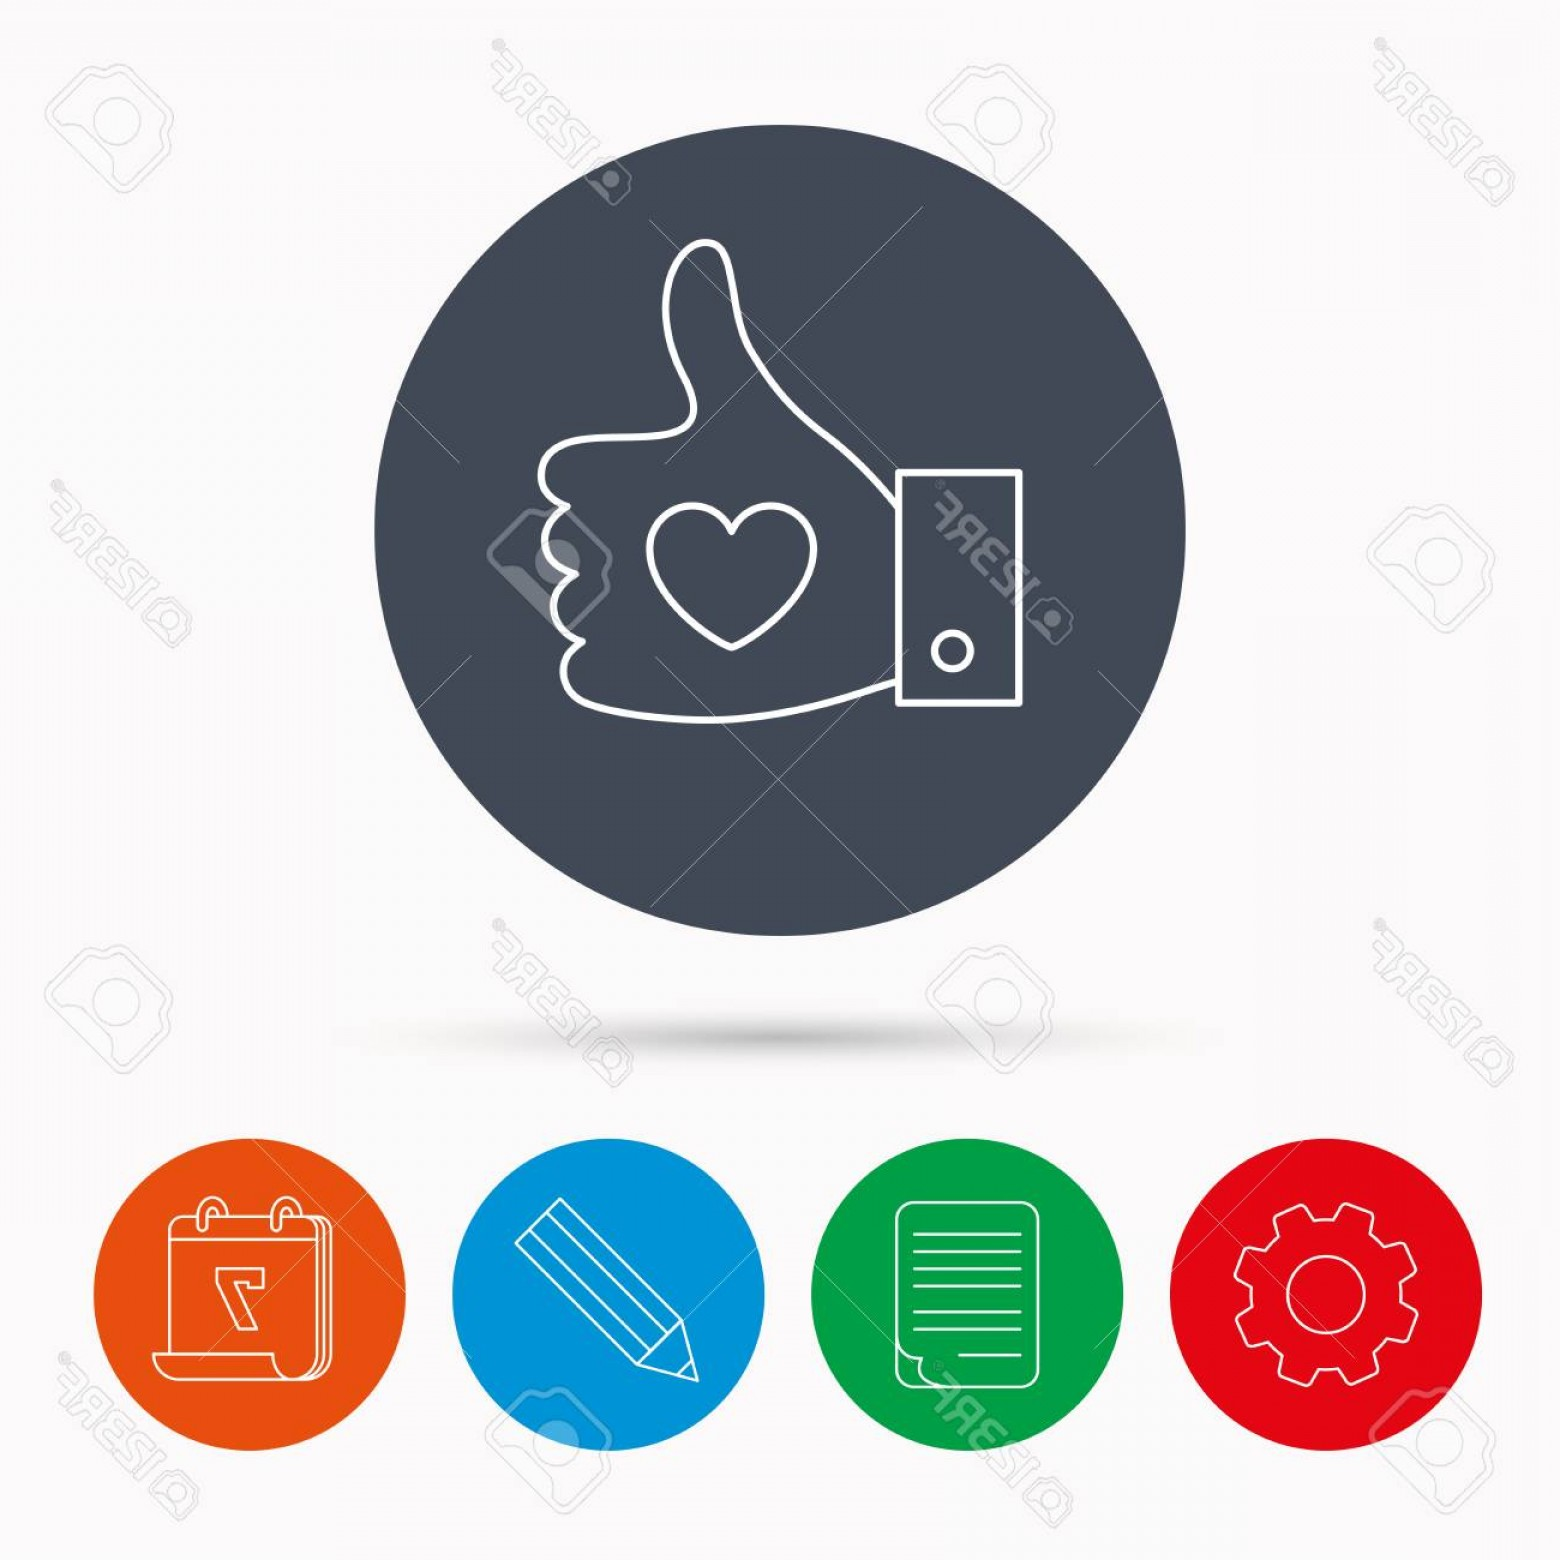 Pencil Icon Vectors Social Media: Photostock Vector Thumb Up Like Icon Super Cool Vote Sign Social Media Symbol Calendar Cogwheel Document File And Penc